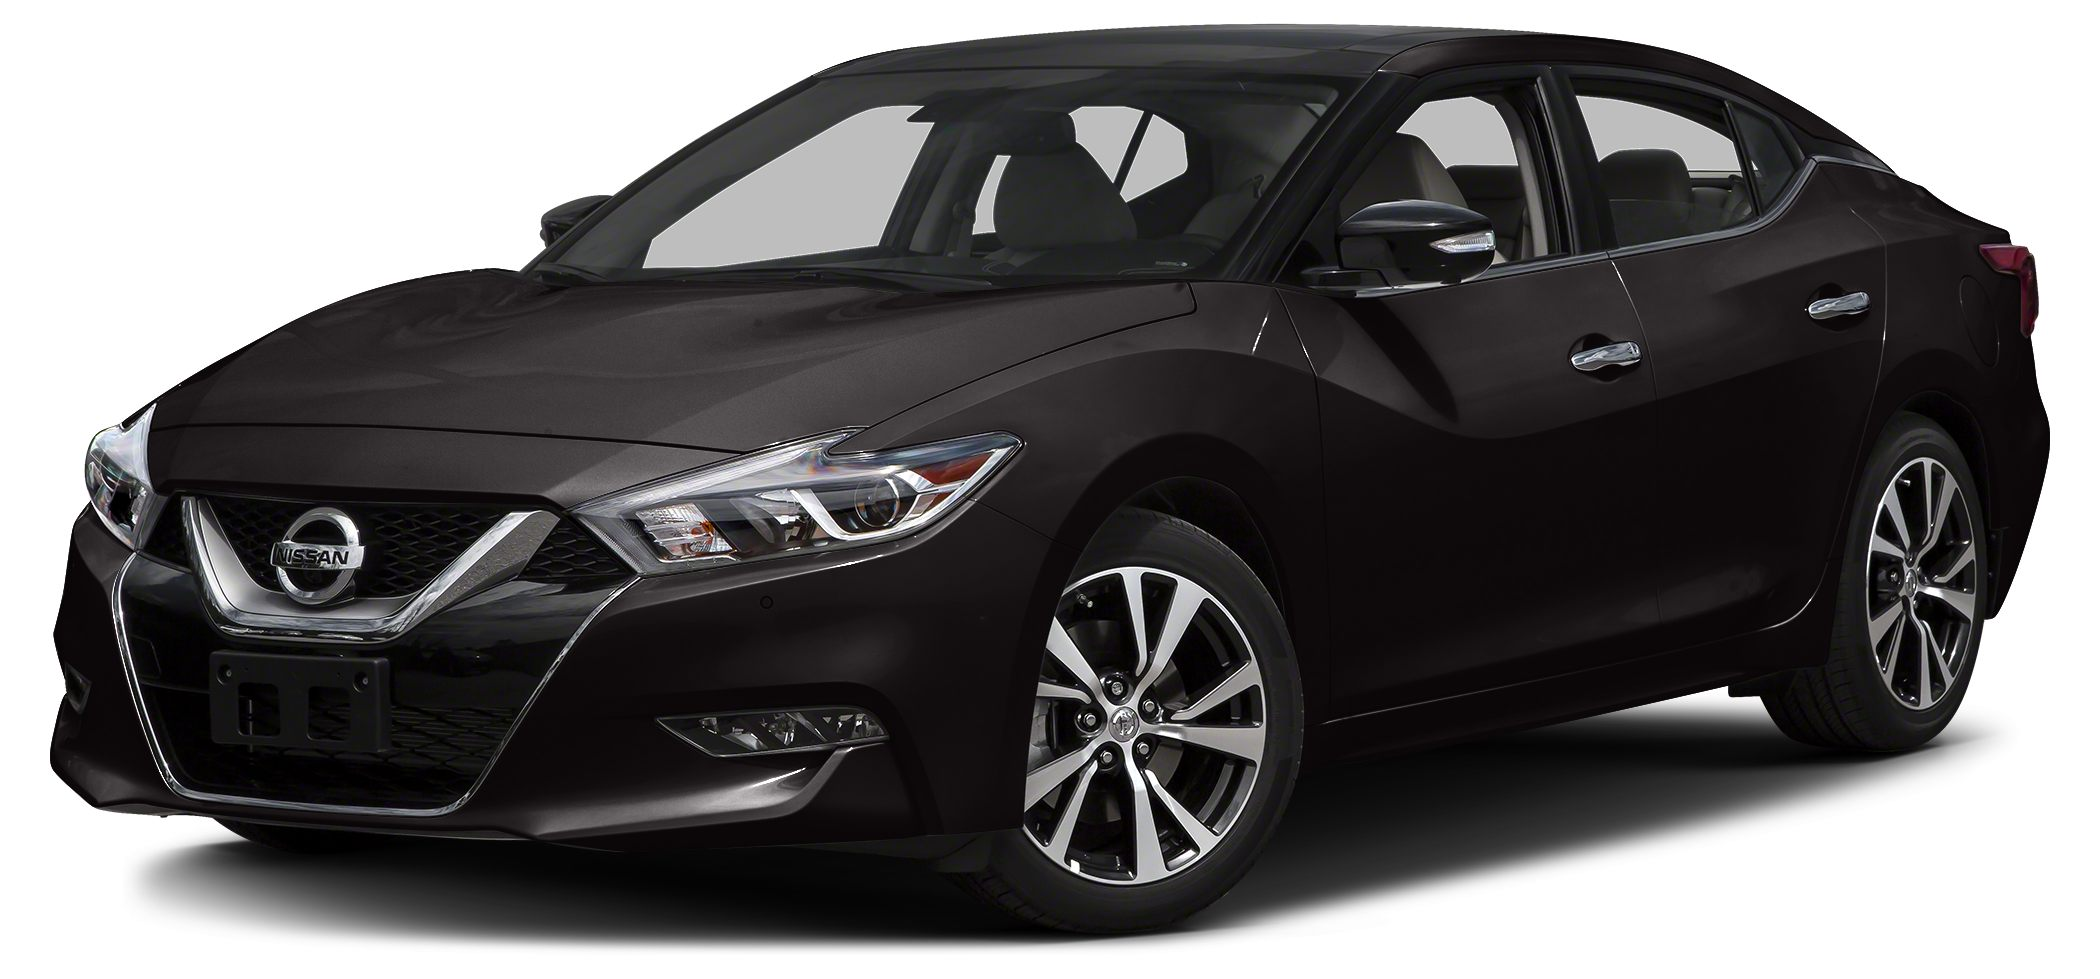 2016 Nissan Maxima 35 Platinum Miles 15Color Bordeaux Black Stock DU7160190 VIN 1N4AA6AP6GC